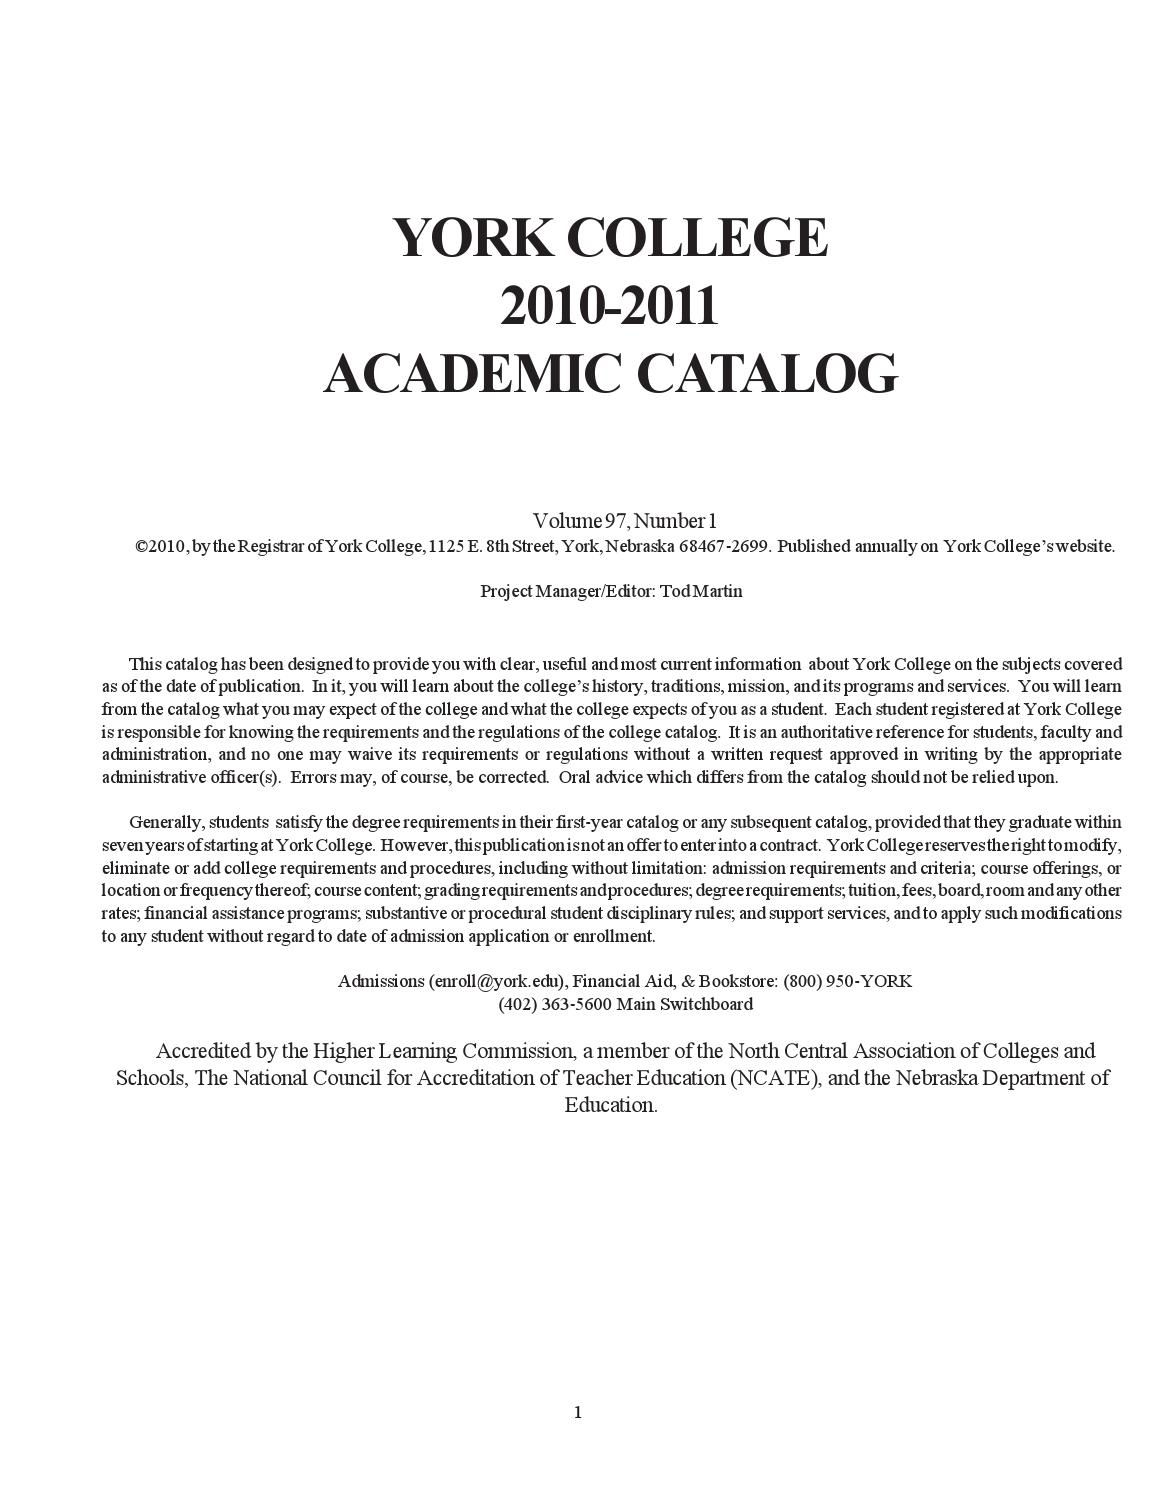 York College 2010-2011 Academic Catalog by York College - issuu